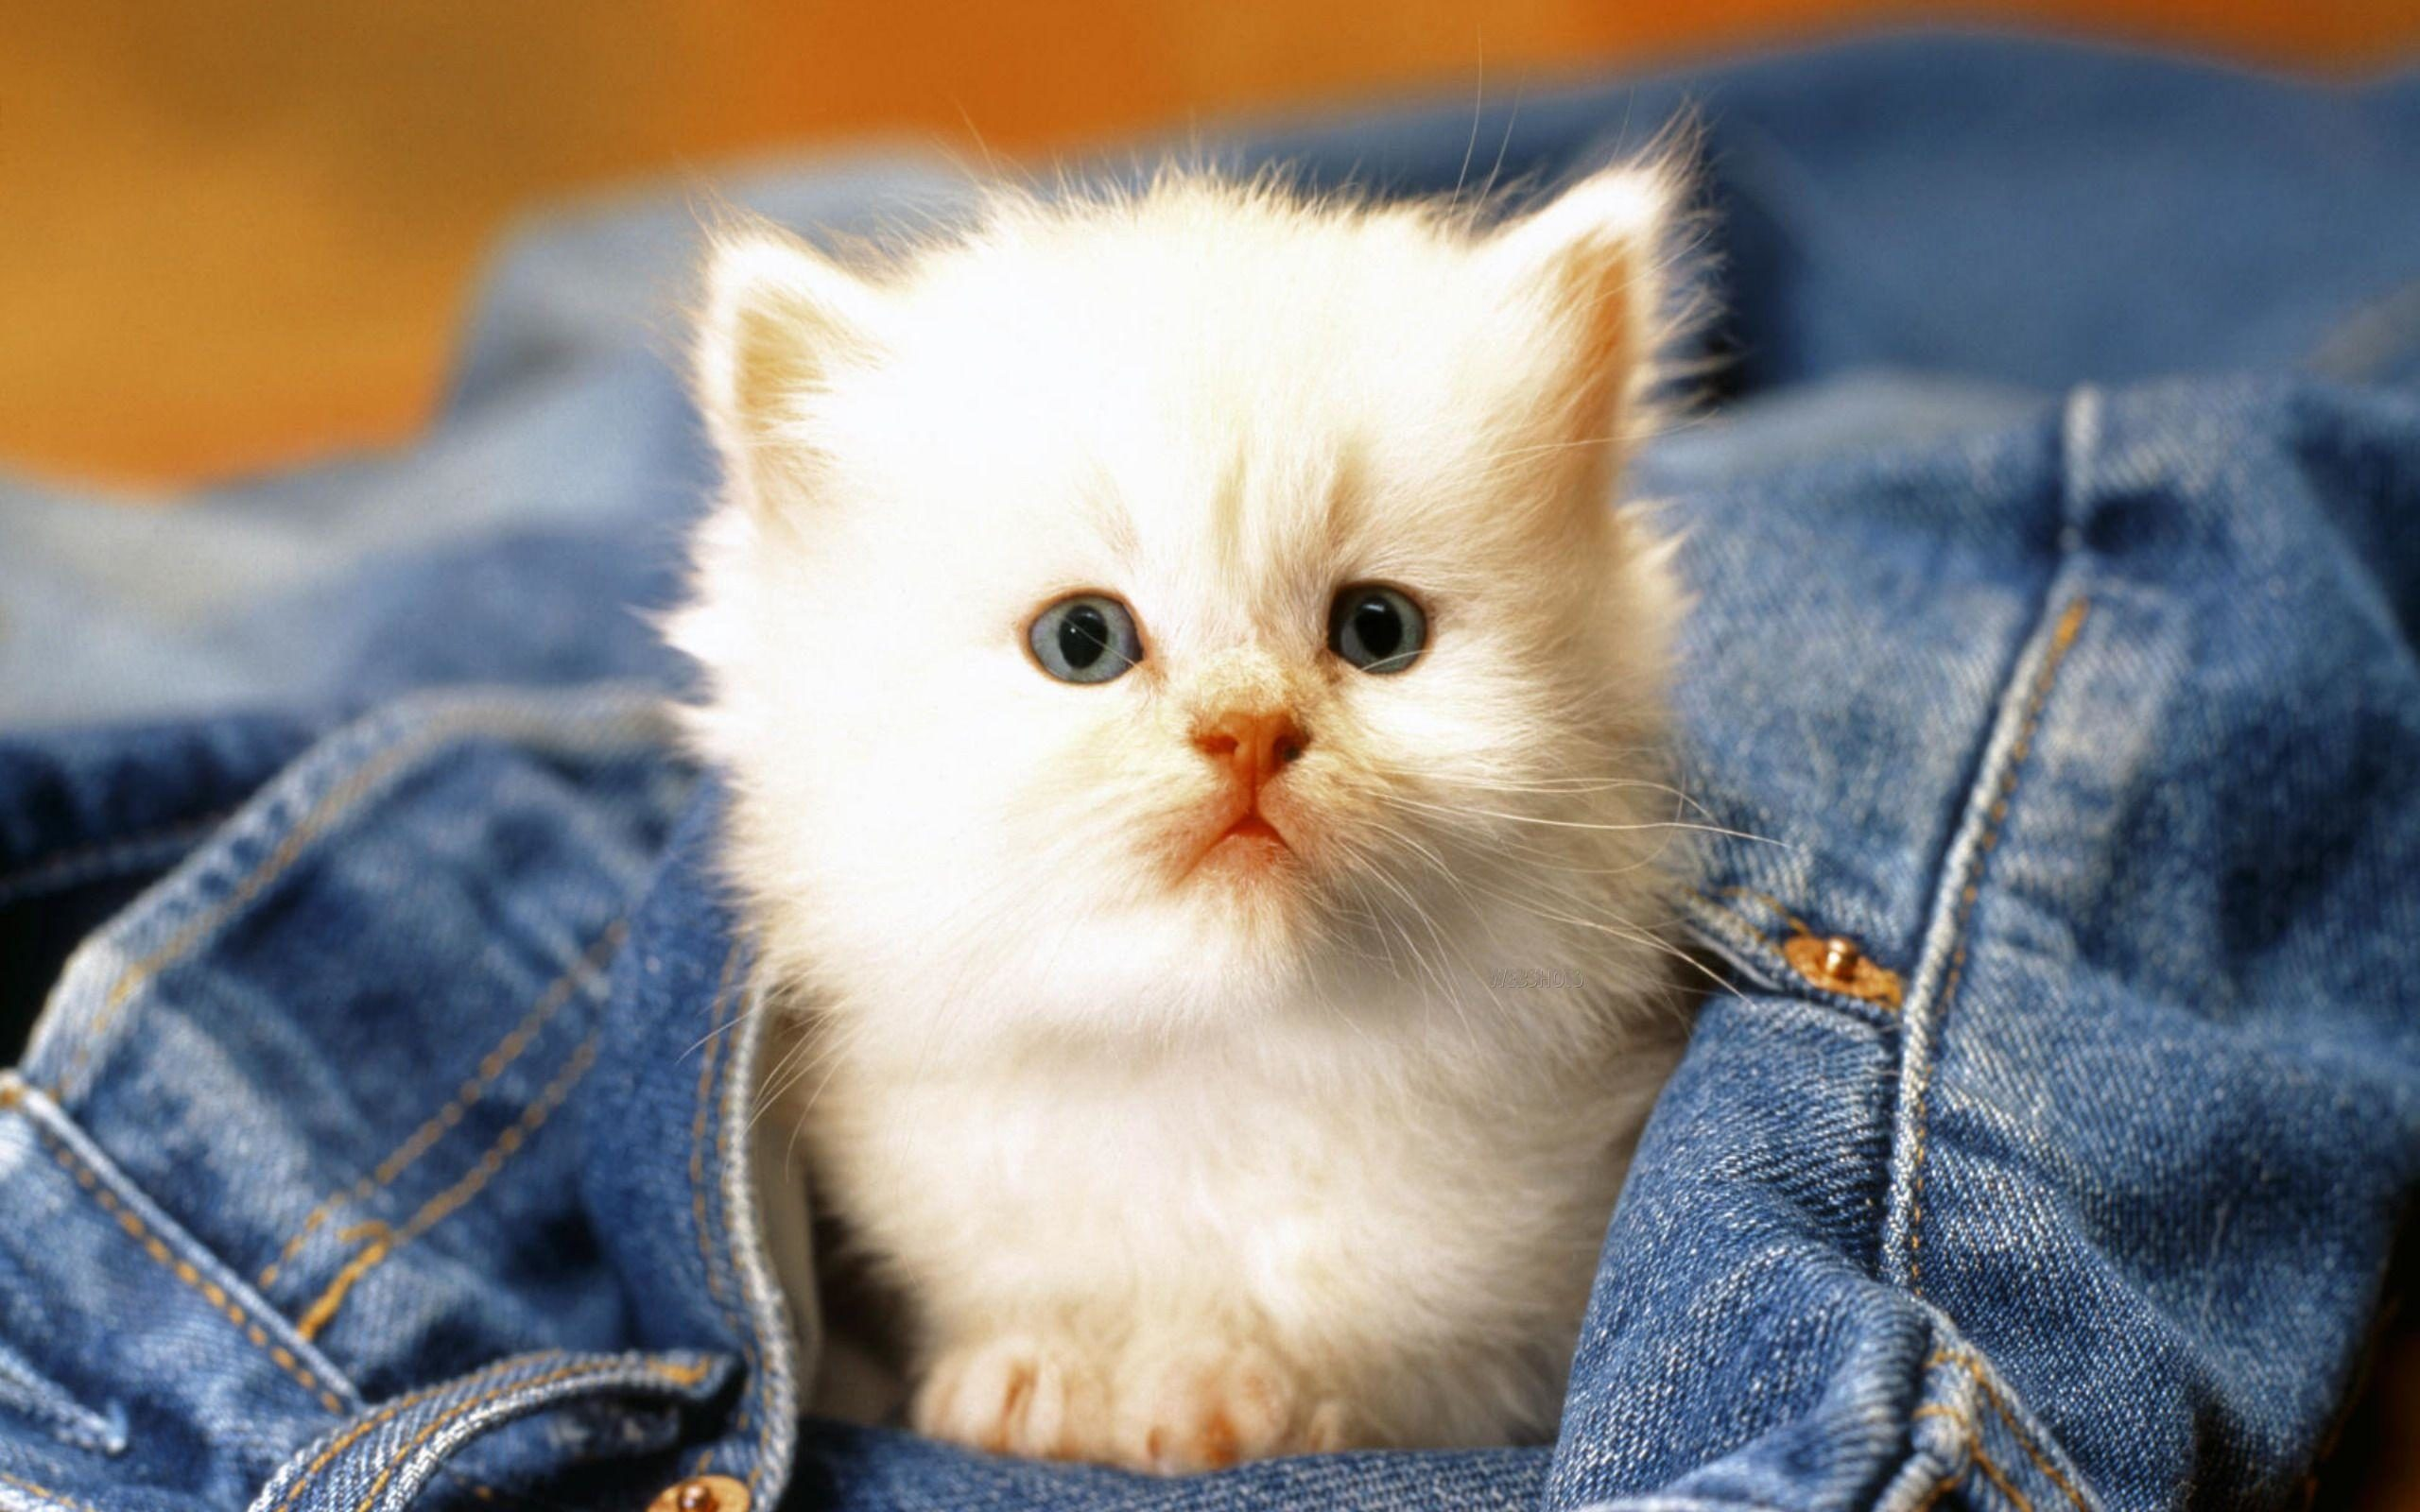 hd cat images free download 5